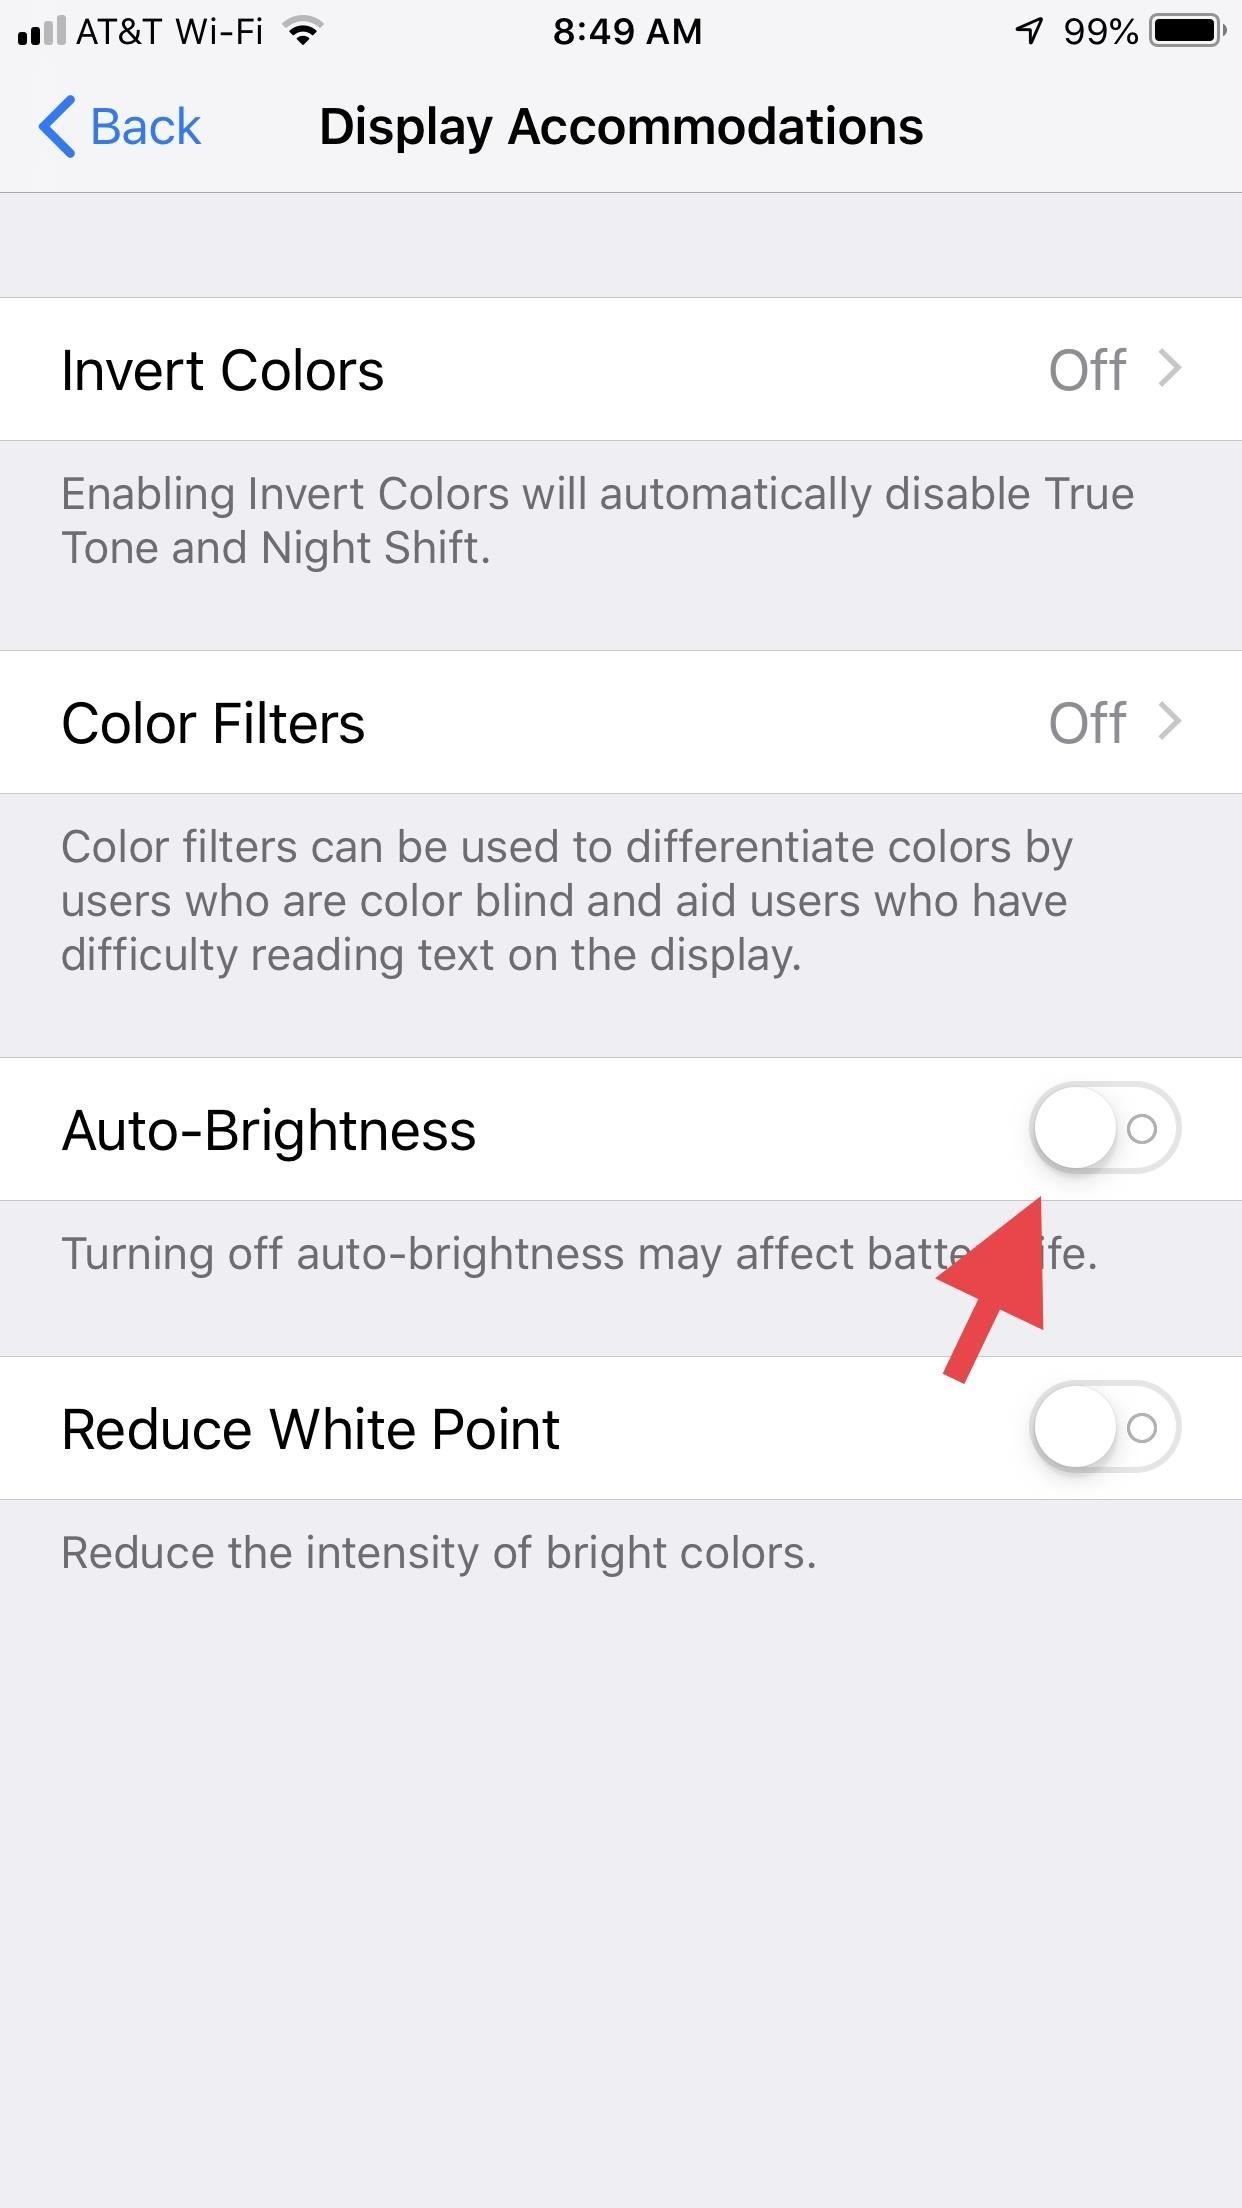 How to Improve Battery Life on Your iPhone Running iOS 12